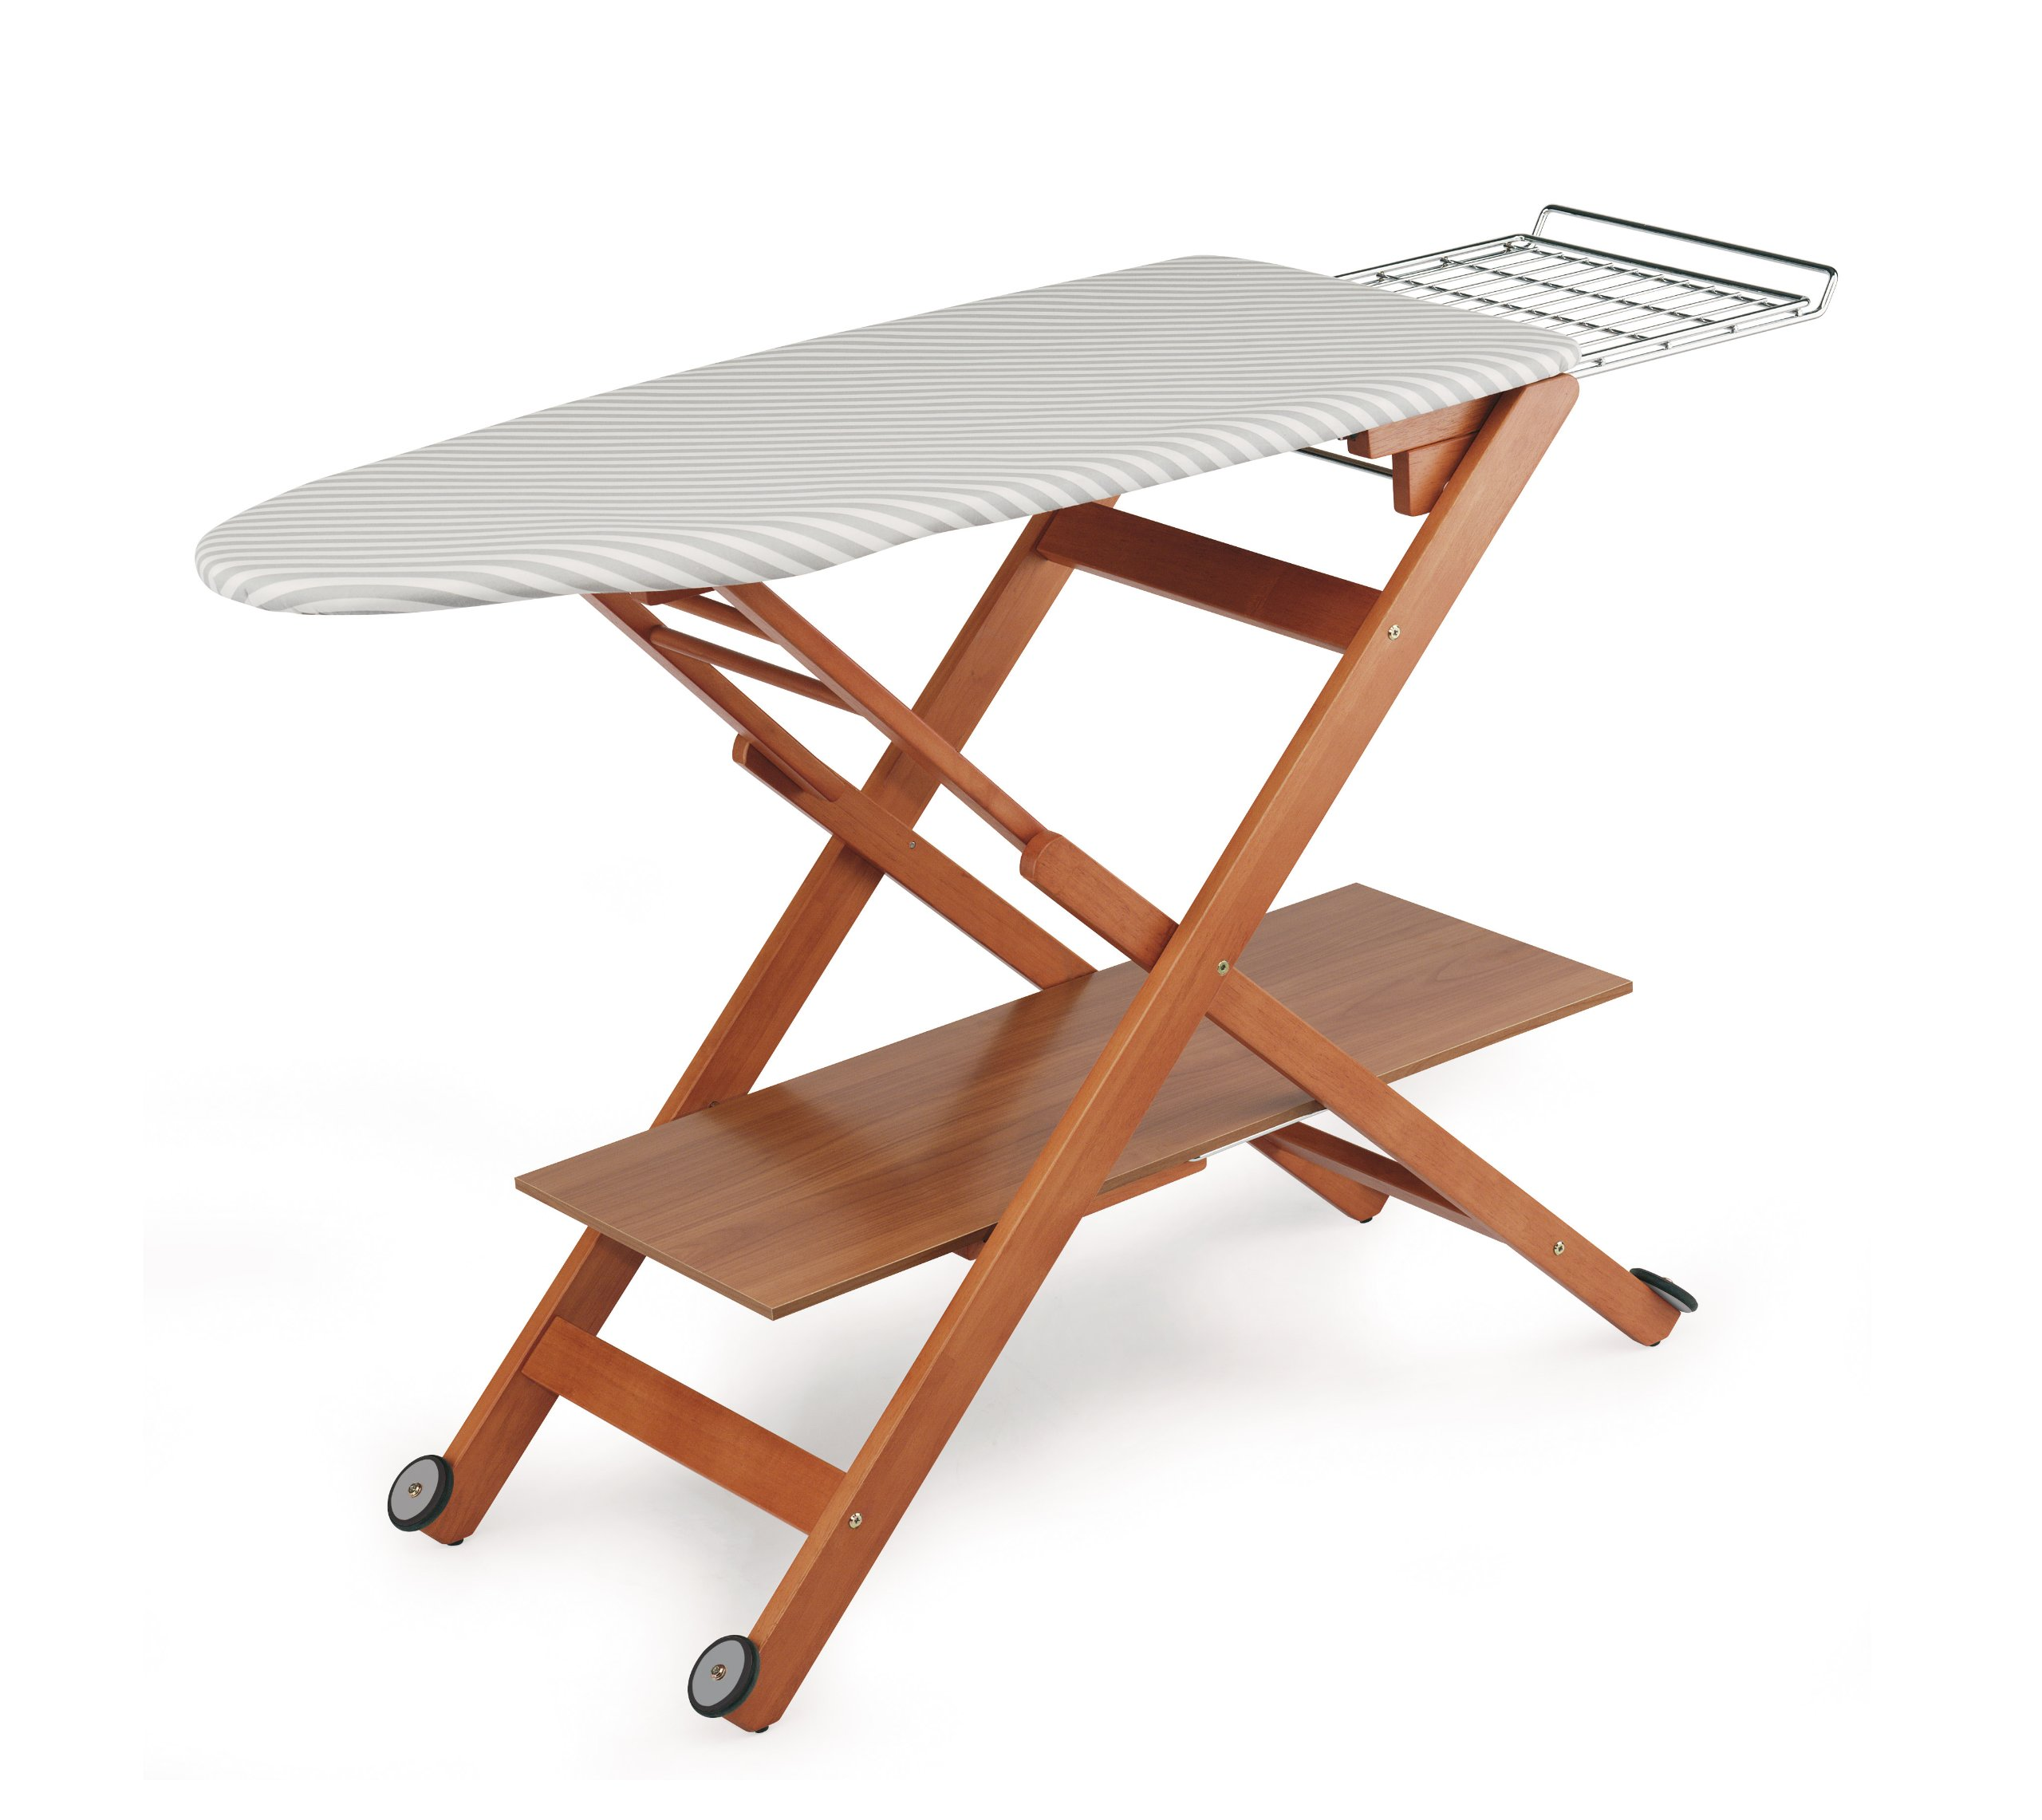 Aris Regolstir - Folding Ironing Board In Solid Beech Wood - 3 Height Positions - Portable on Castors -Handcrafted in Italy - Cherry Finish